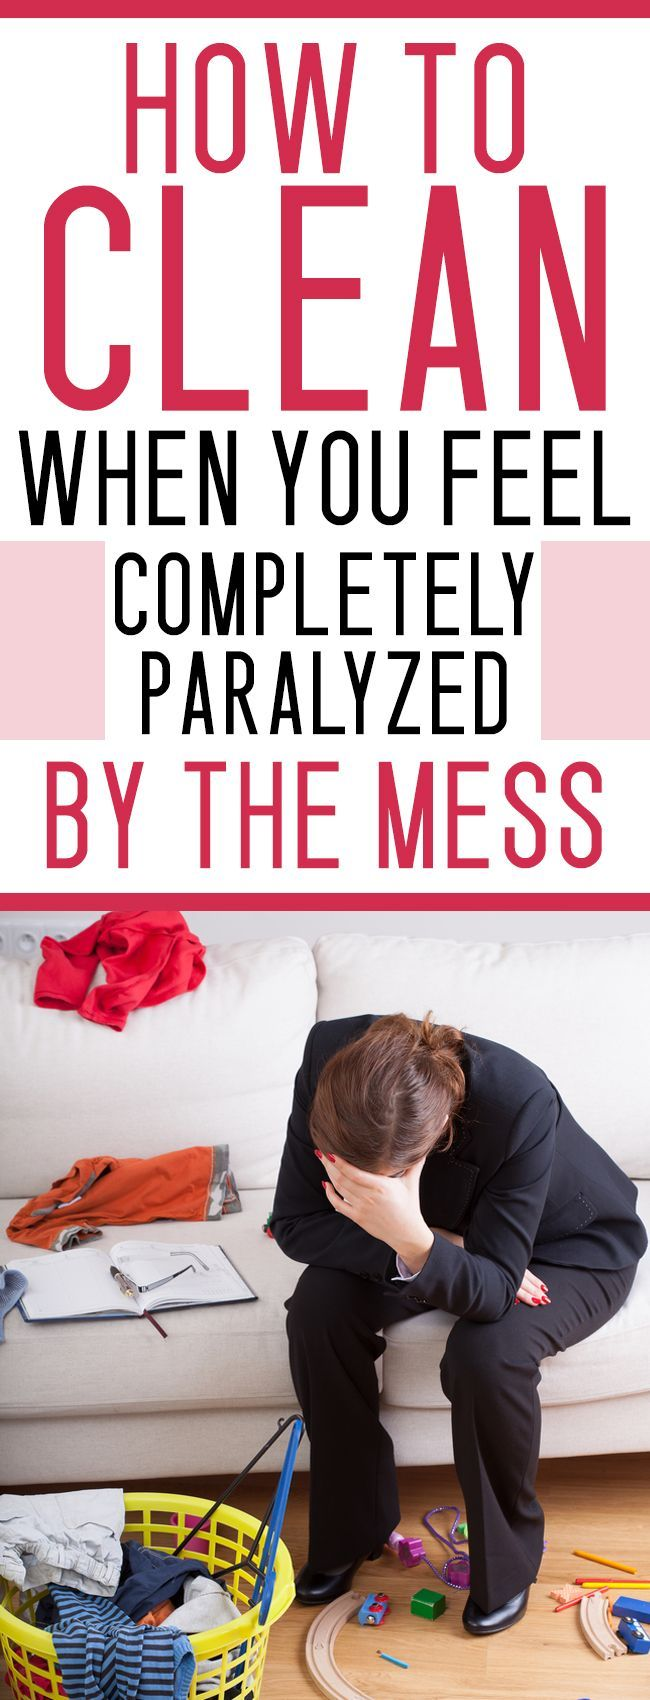 "Clean My House how to clean your house when you feel paralyzed""the mess"